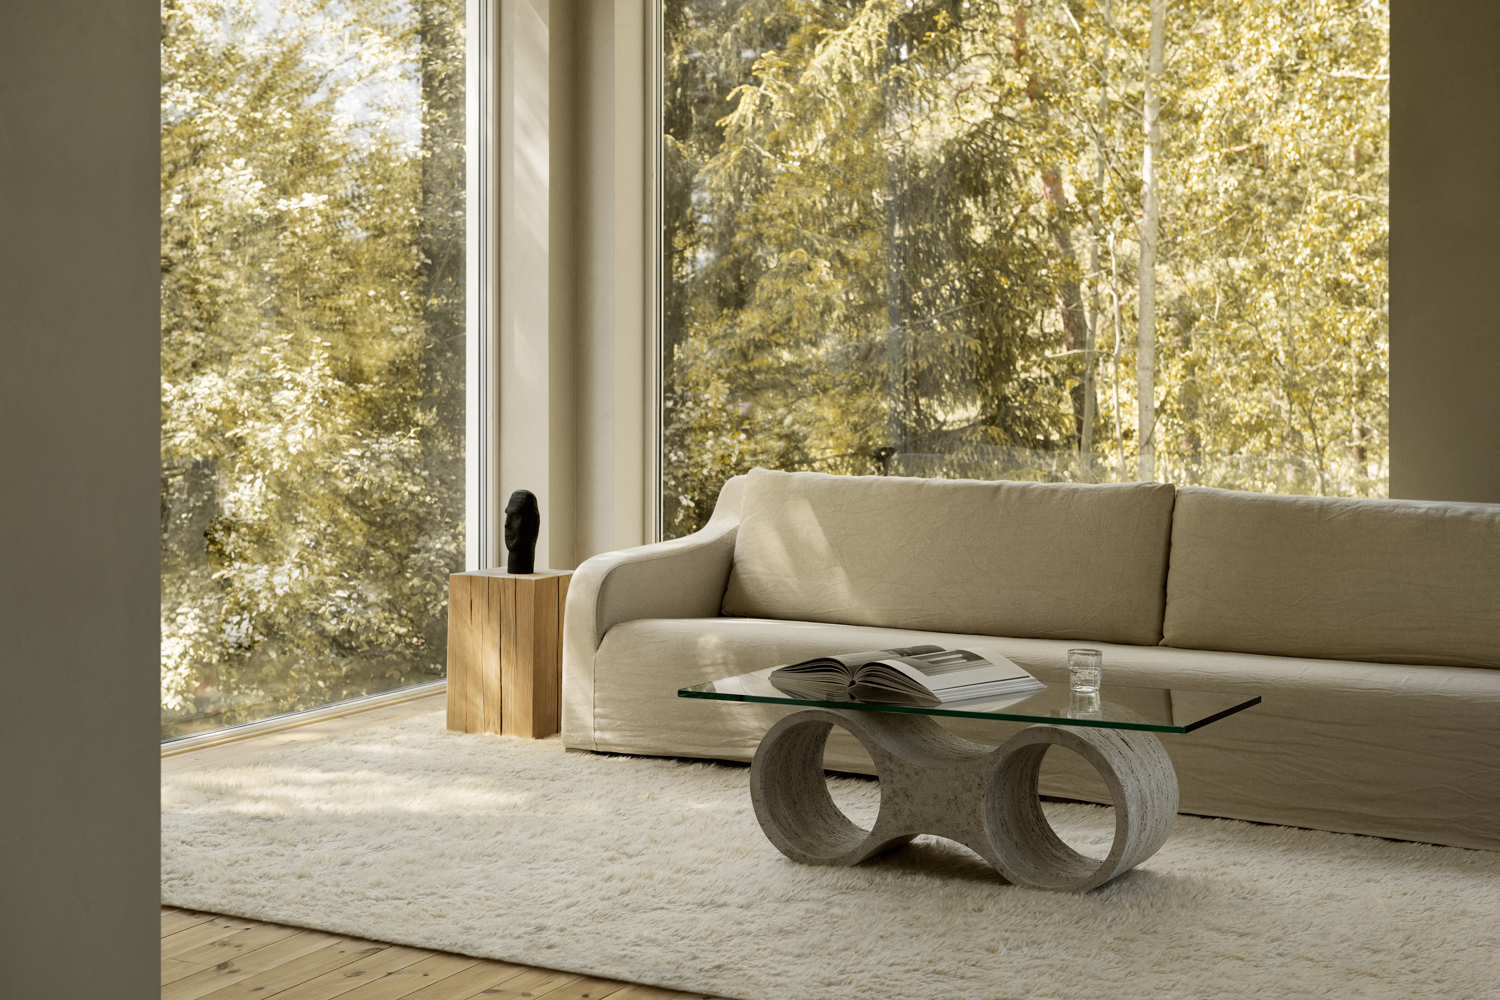 Fields in Dusty White in a beautiful room with large windows overlooking the woods.